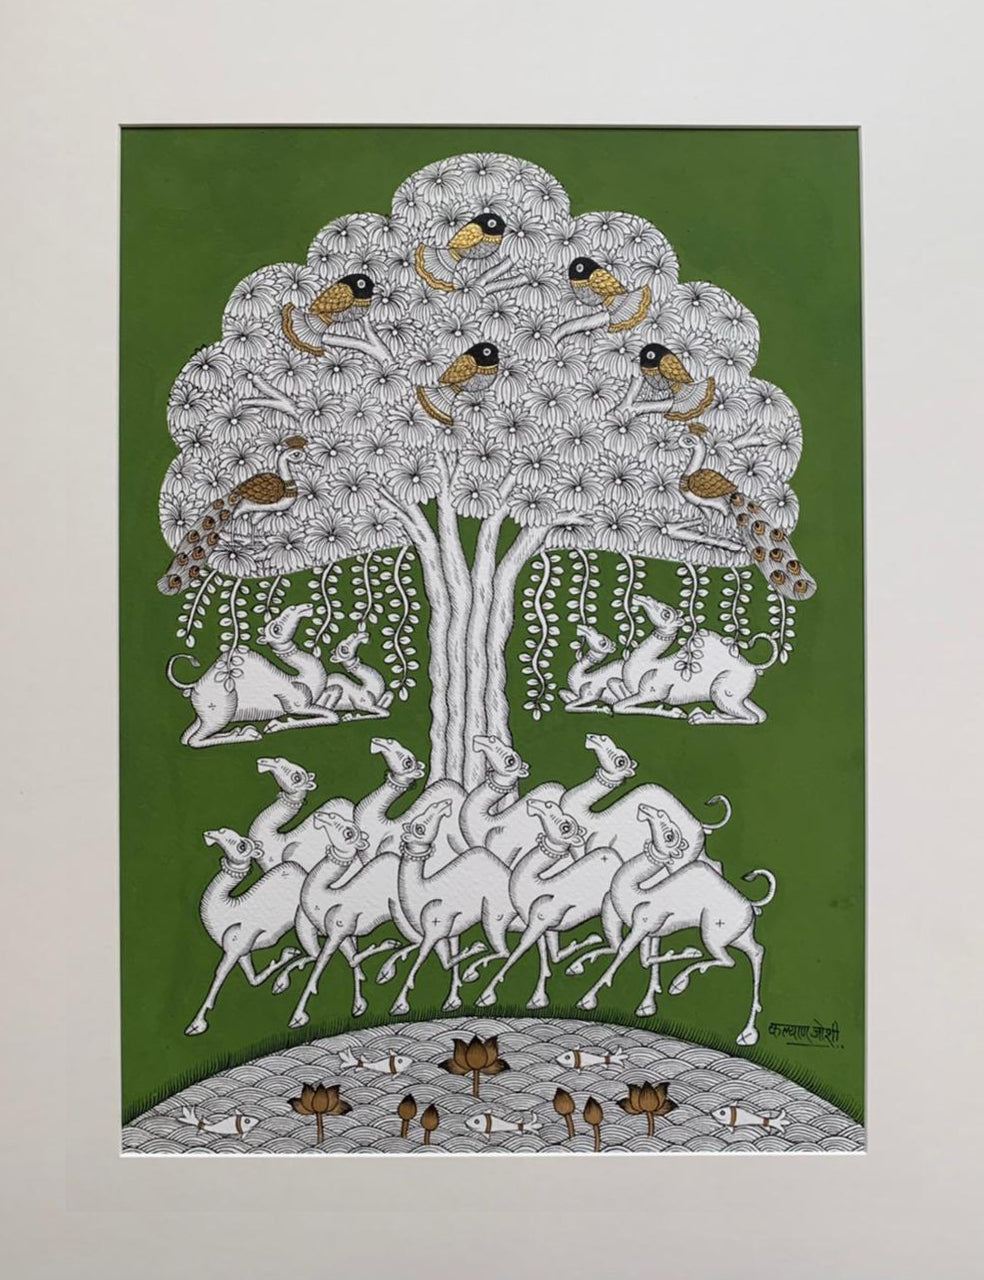 Tree of Life, Phad painting by Kalyan Joshi (Green & white)